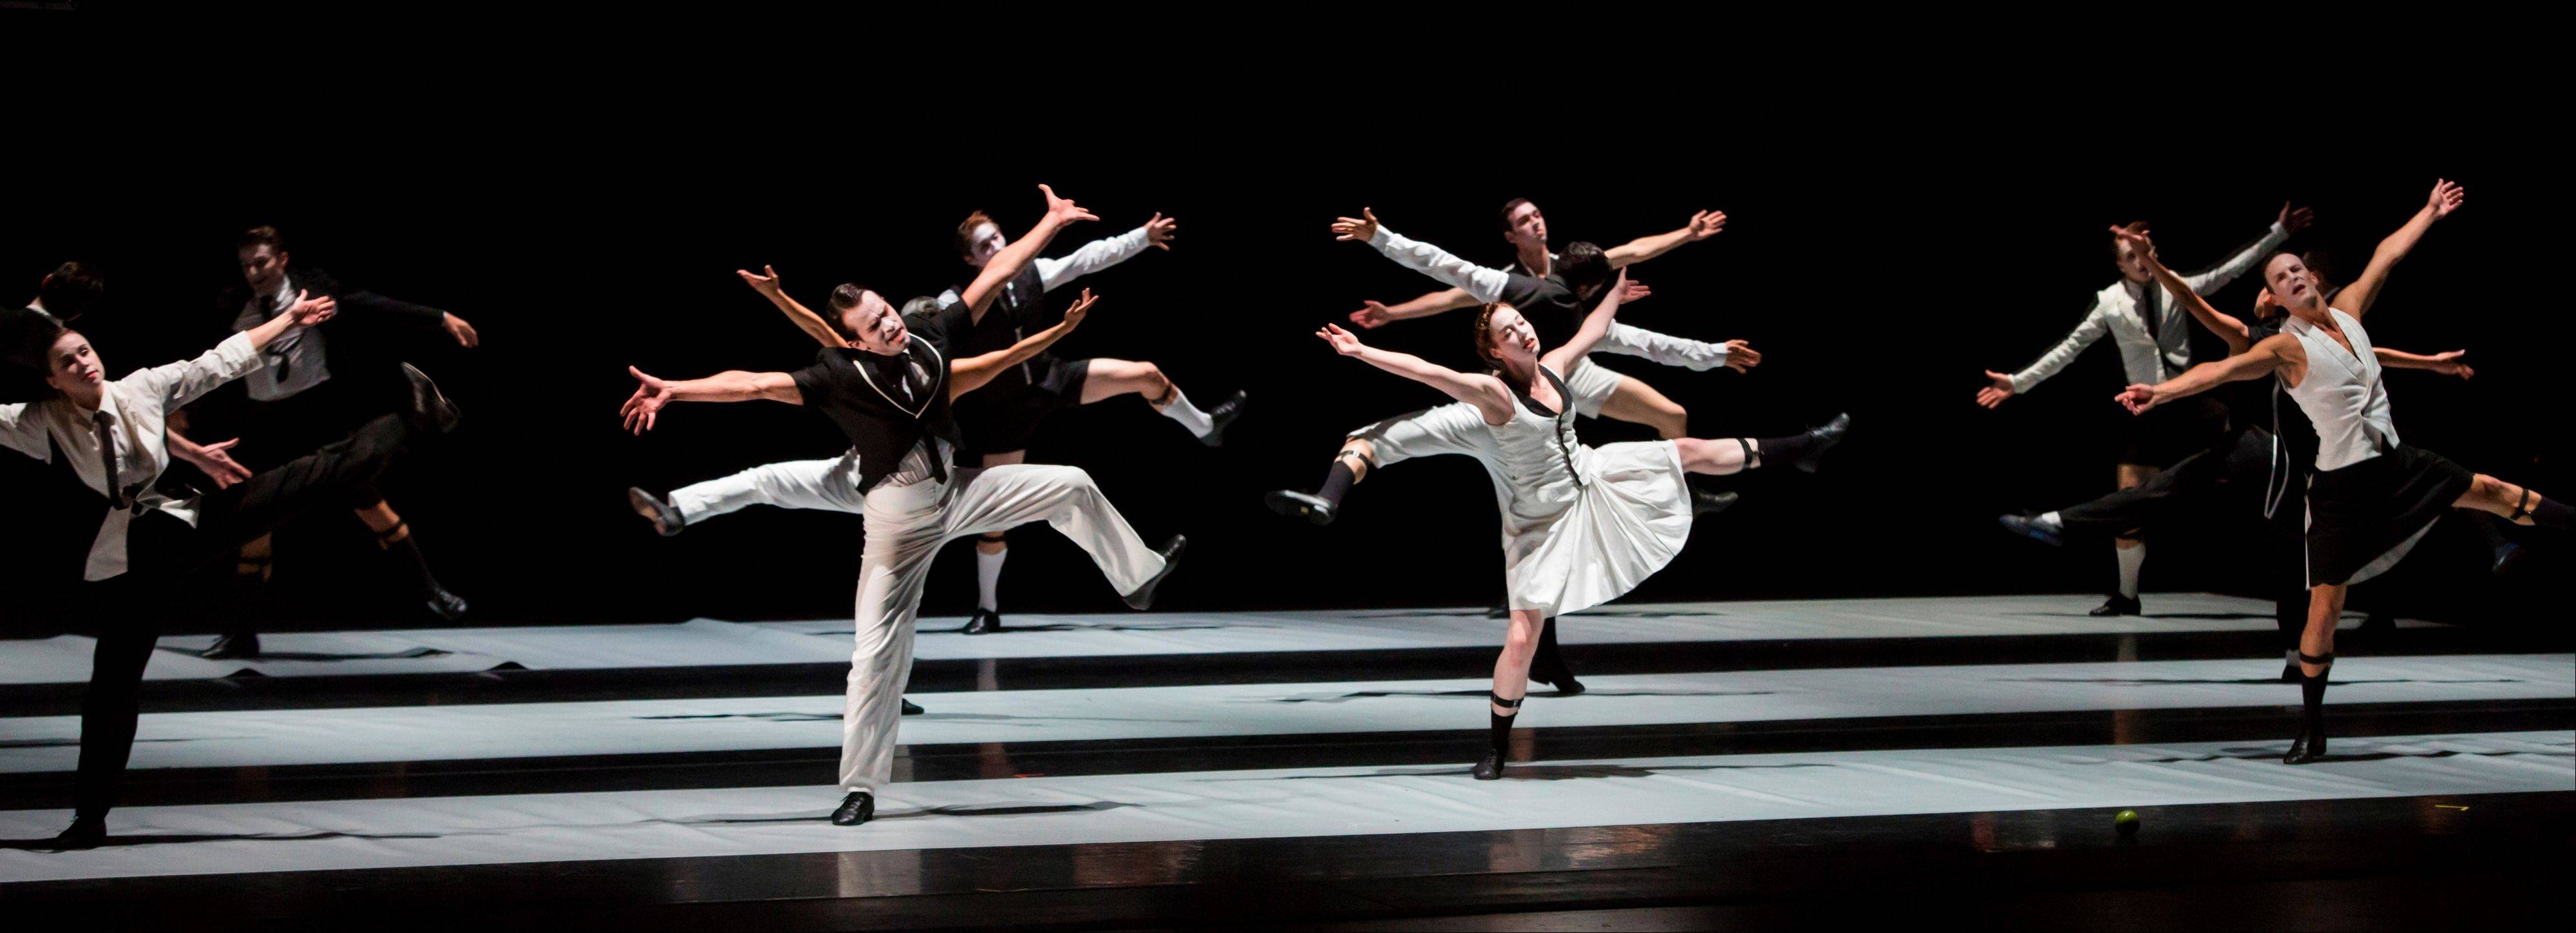 "The Joffrey Ballet will get your mind out of the snow and onto the stage with ""Contemporary Choreographers,"" a program of three works that runs for 10 shows only at the Auditorium Theatre, Feb. 12-23."